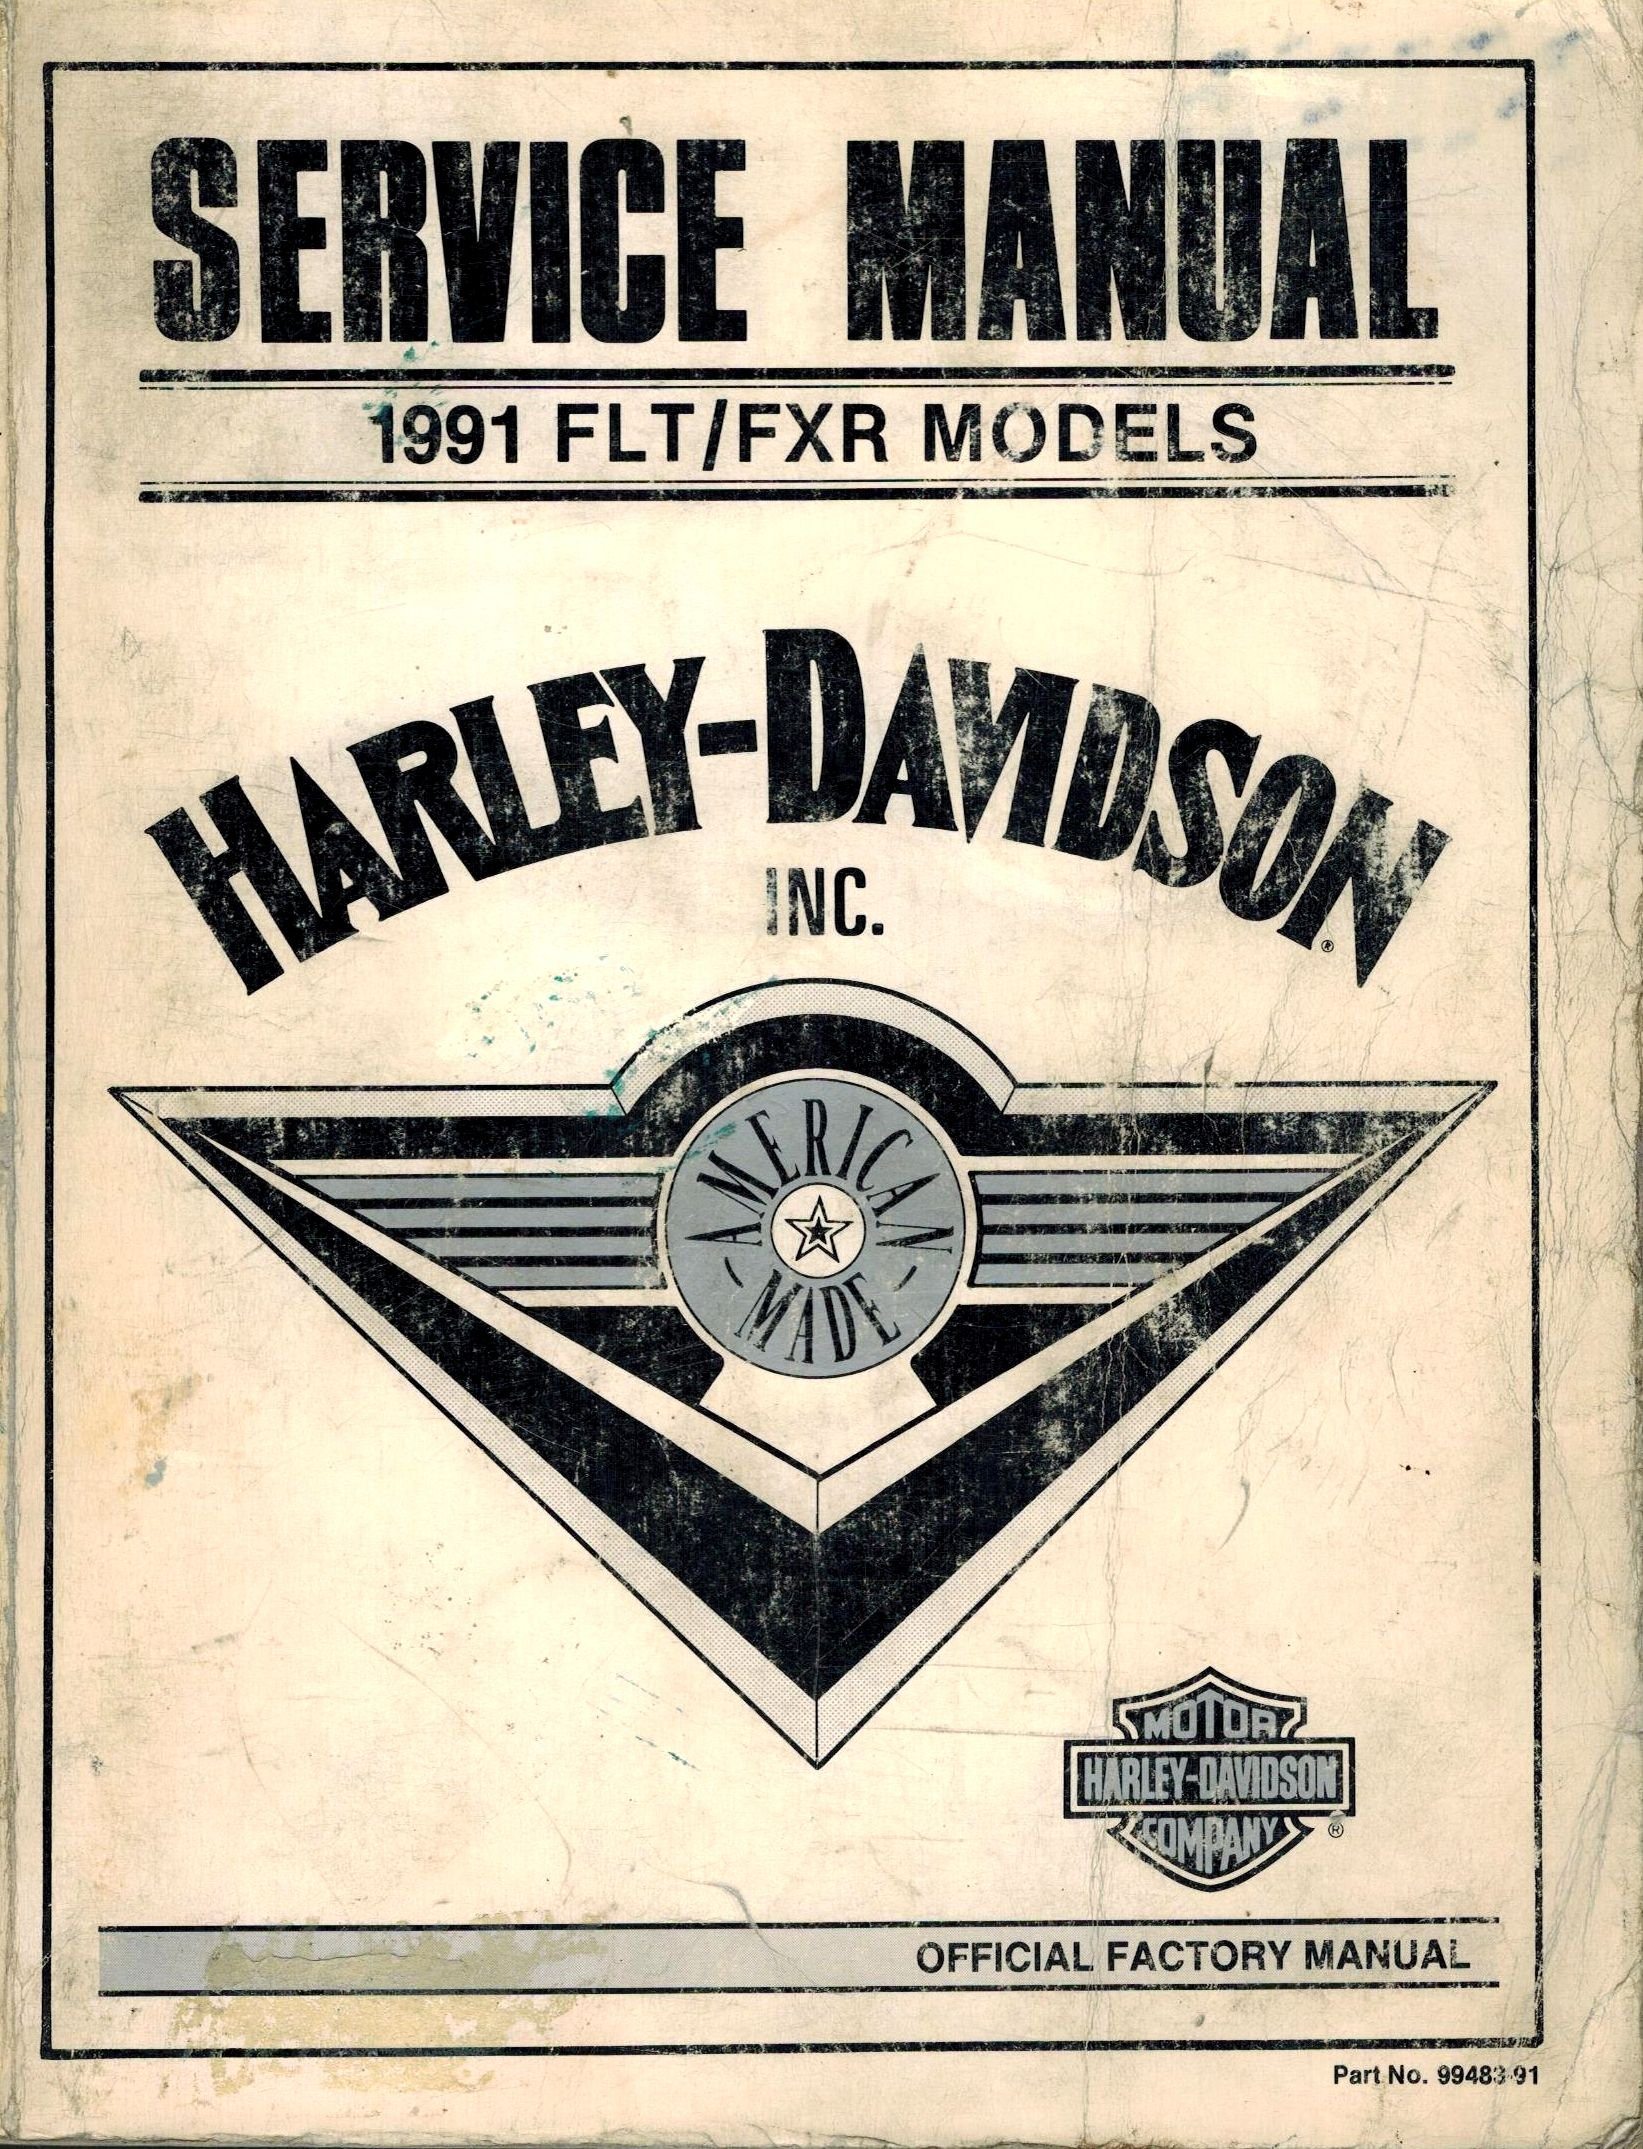 1991 Harley-Davidson Service Manual for FLT/FXR 1340cc 5